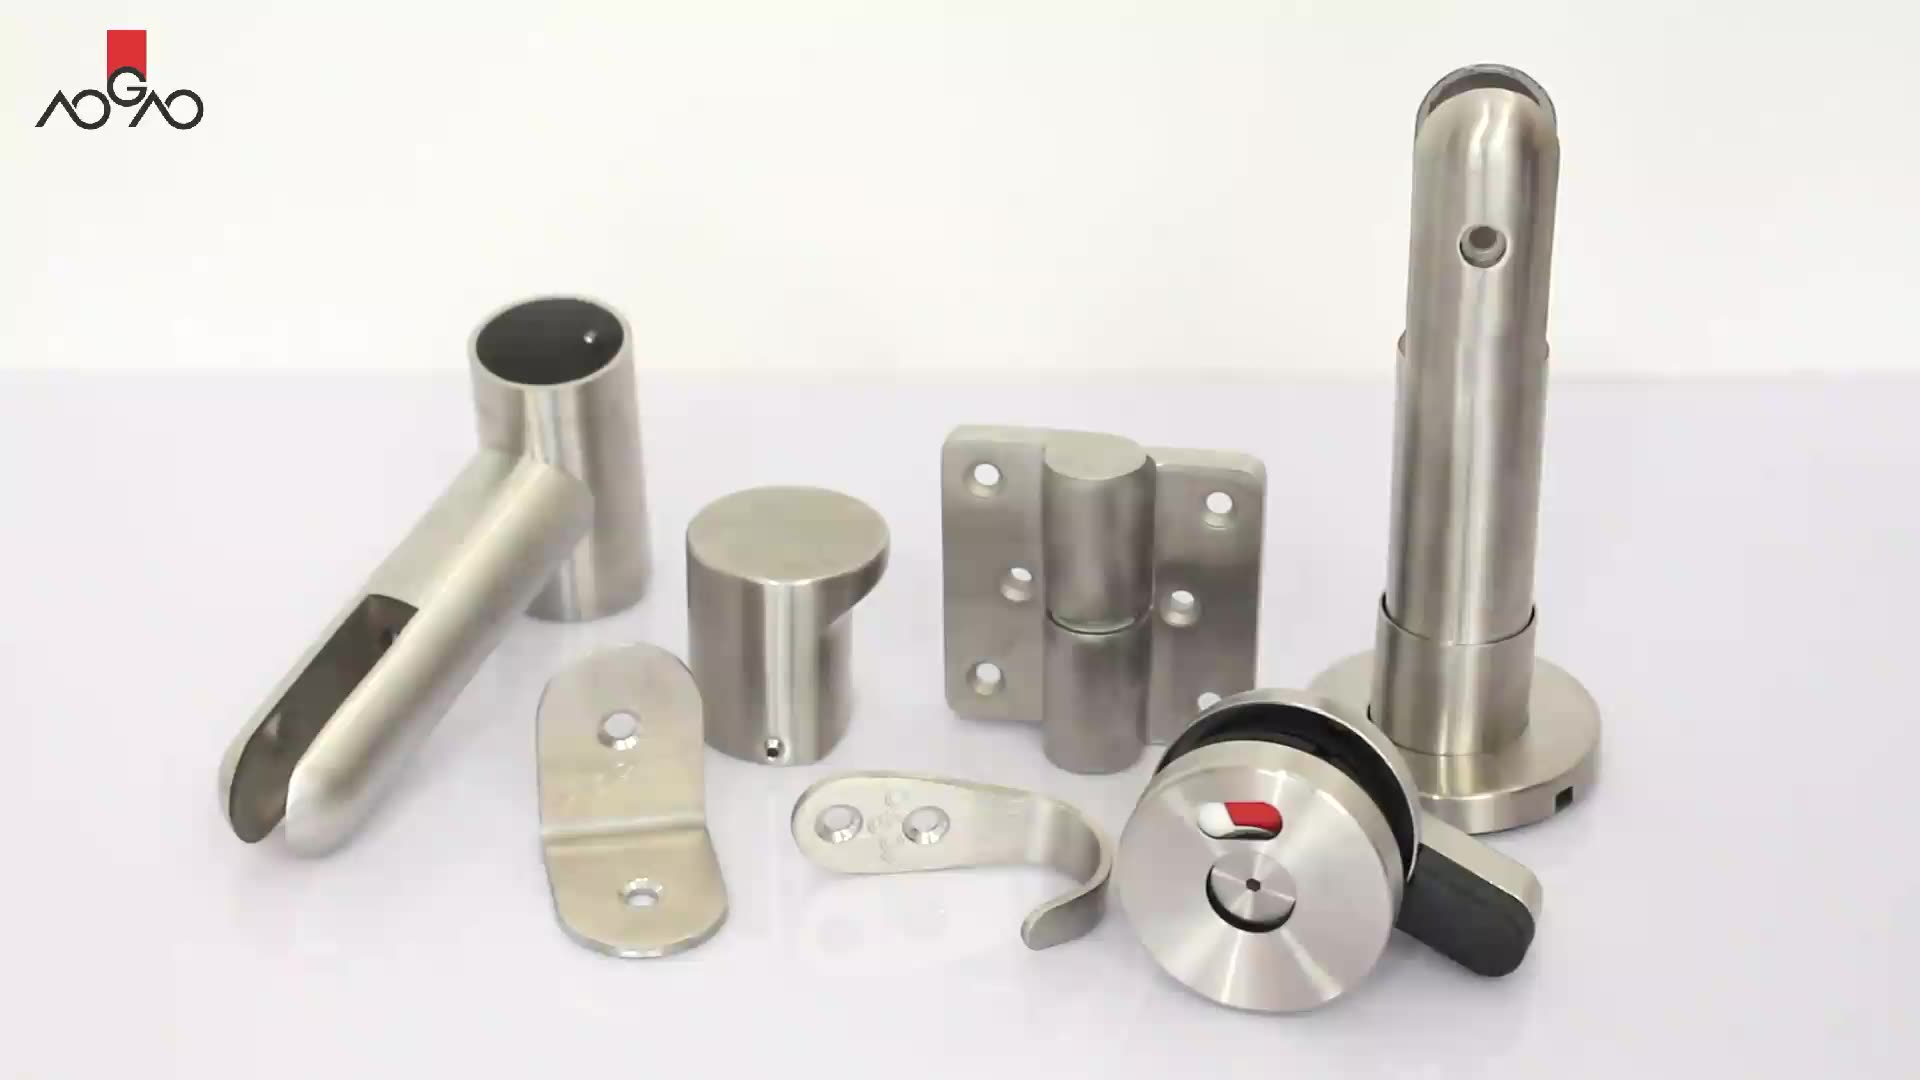 AOGAO Popular Combined Stainless Steel Toilet Cubicle Hardware Accessories Manufacturer